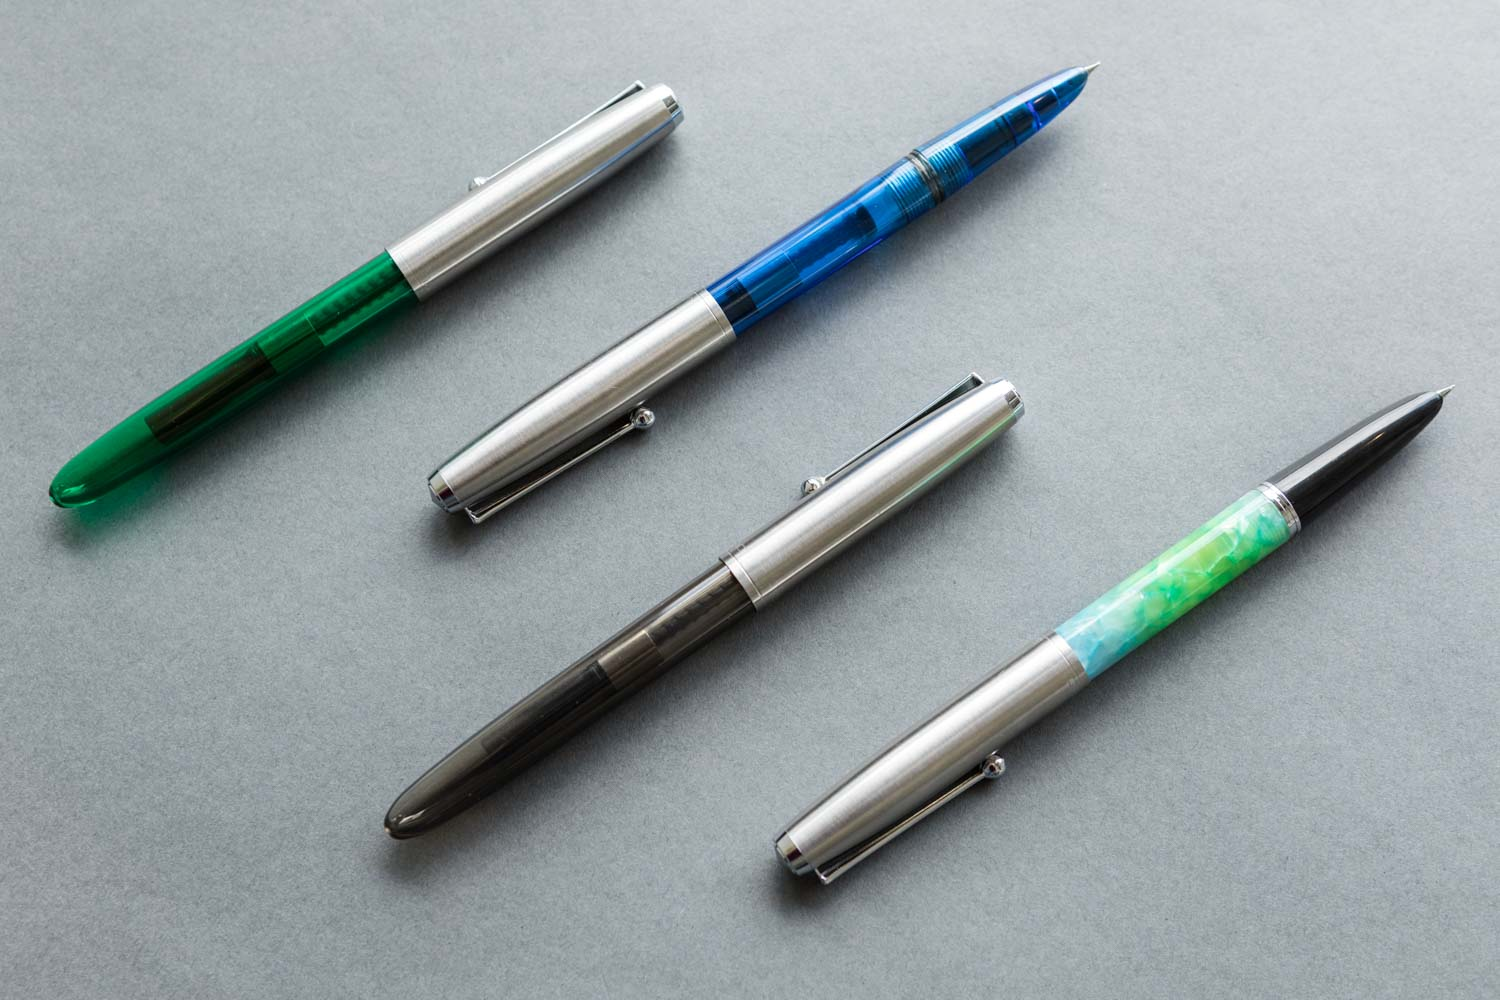 Translucent Blue 0.38-2.9 mm nibs Jinhao 51A Calligraphy Fountain Pen